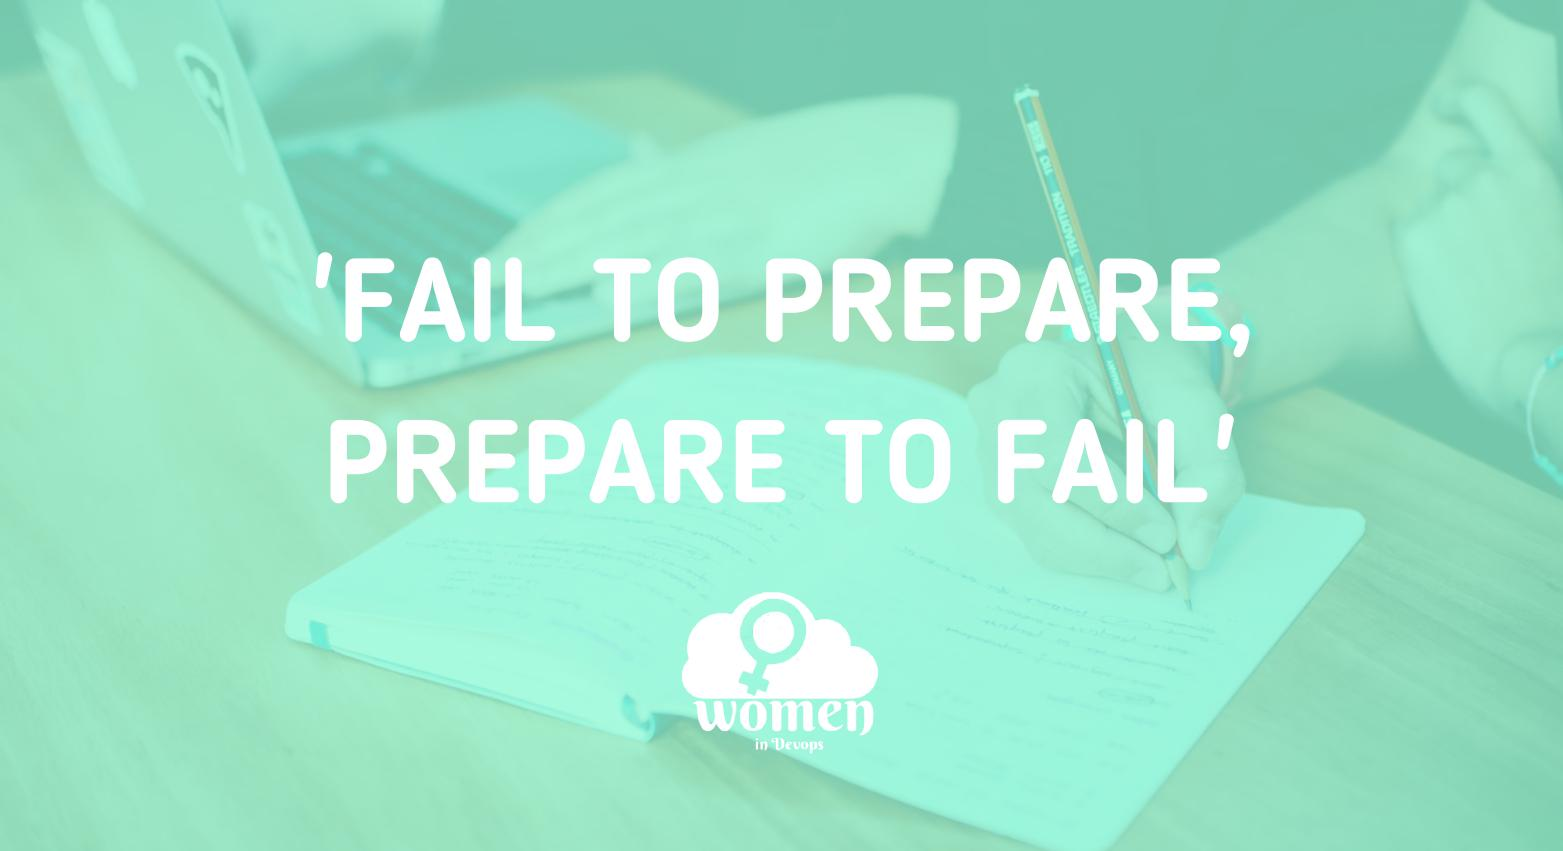 Article: Fail to Prepare, Prepare to Fail